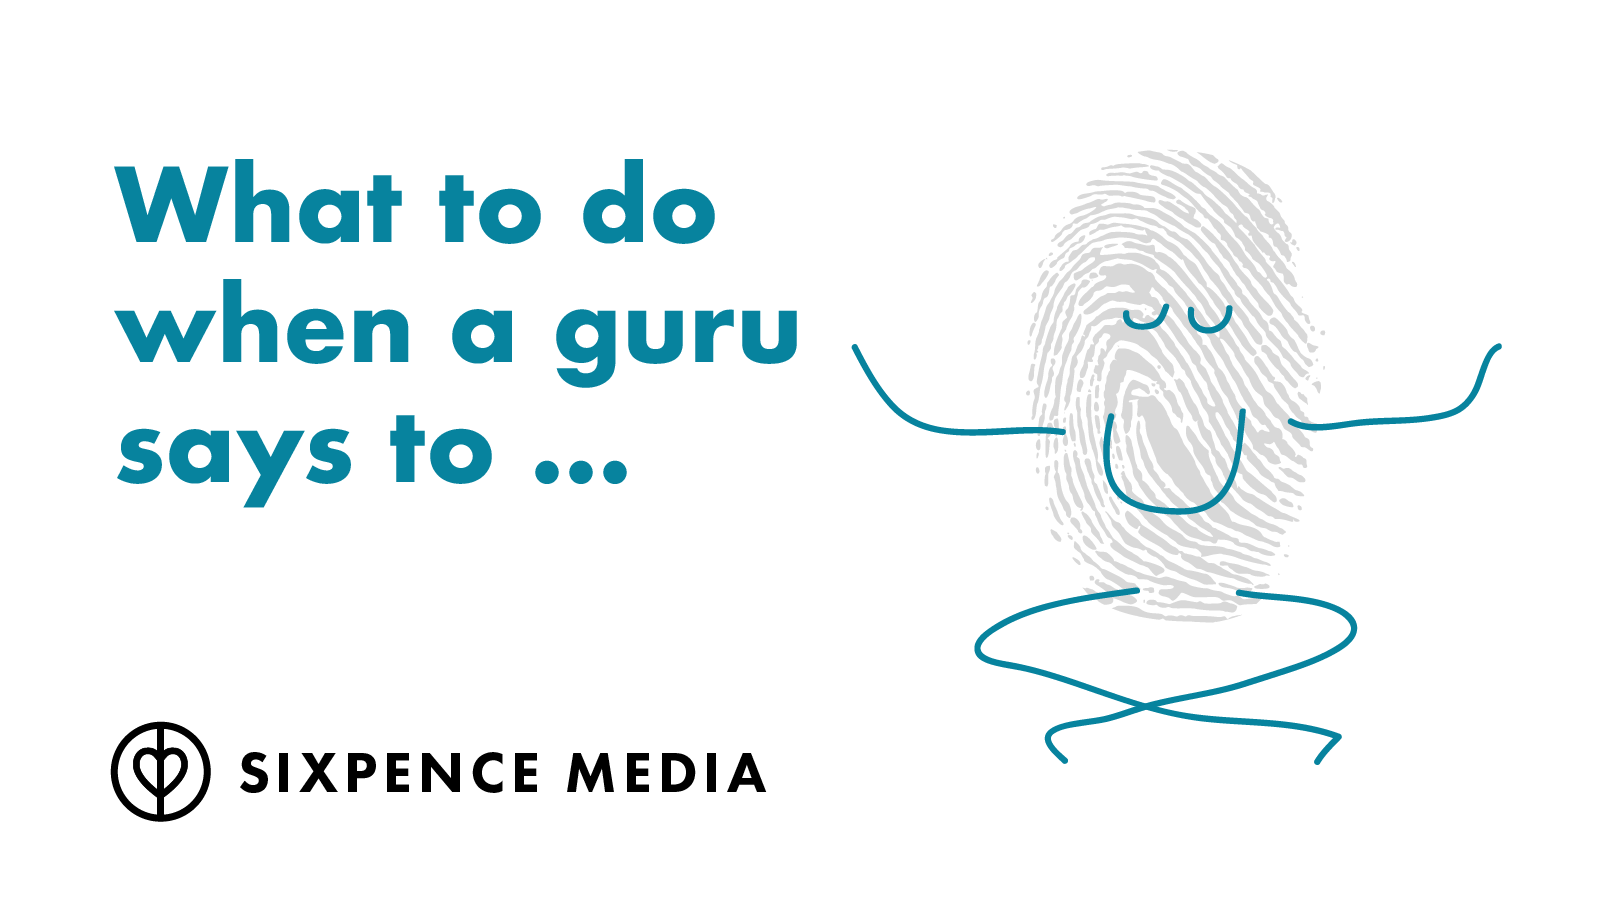 Blog---What-to-do-when-a-guru-says-to.png